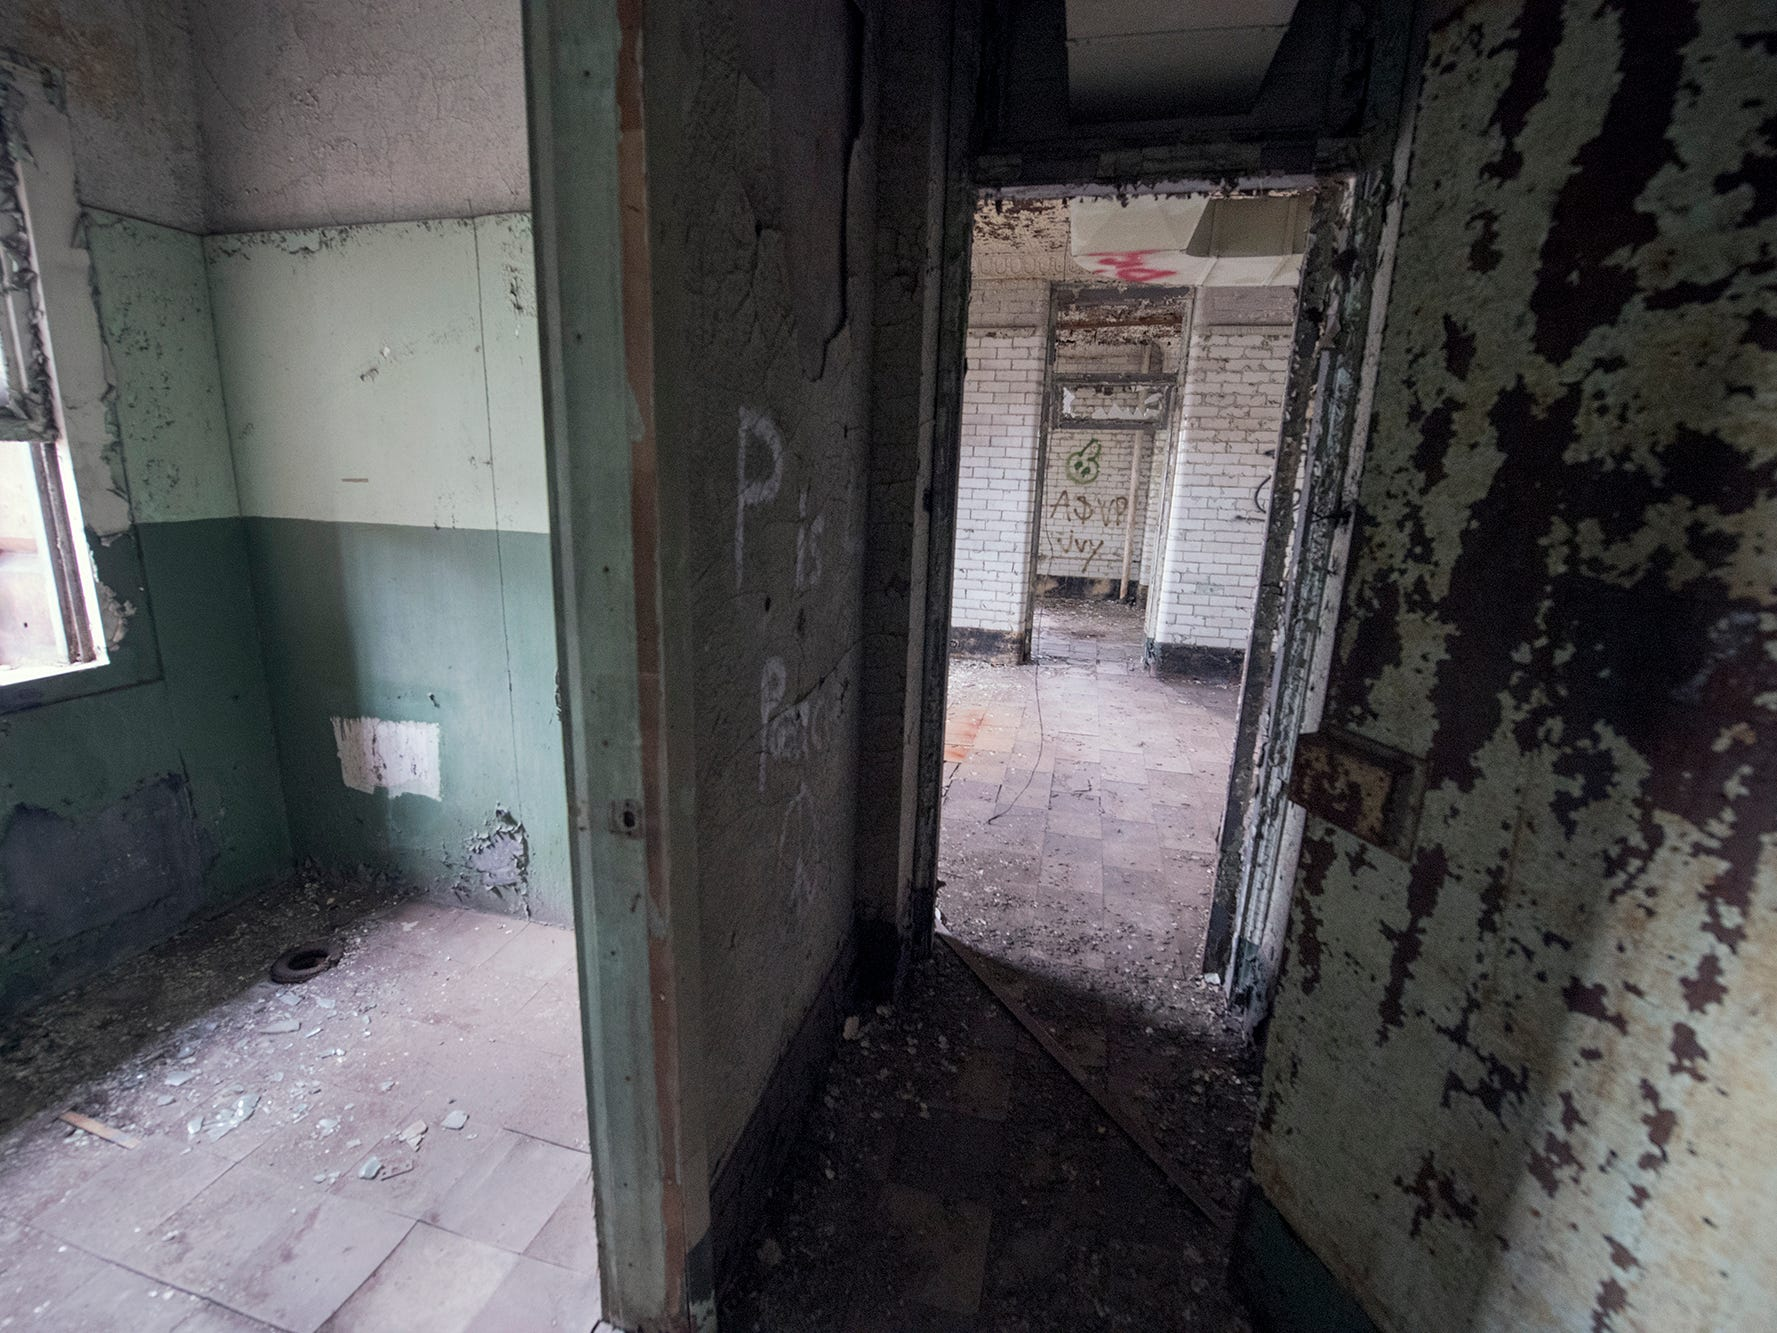 Offices crumble with years exposed to heat and cold inside the first floor of old the York County Prison.